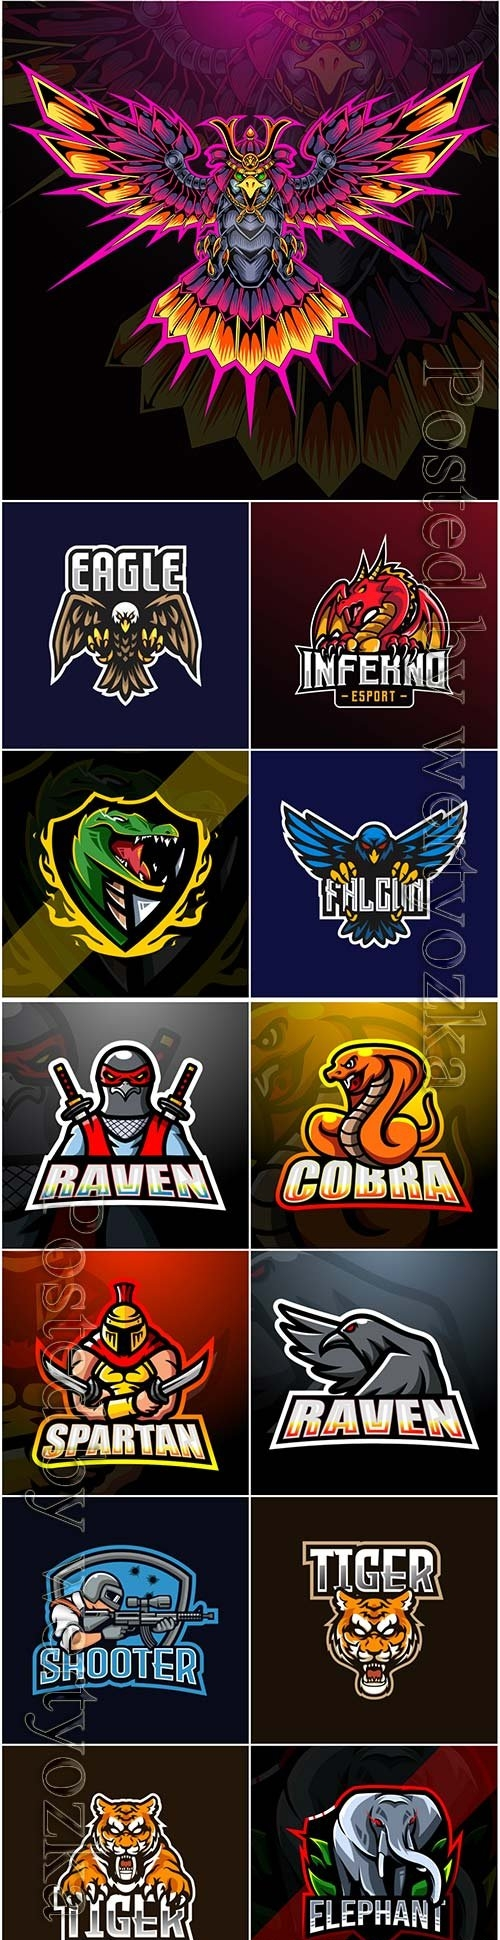 Mascot esport logo design premium vector vol 35